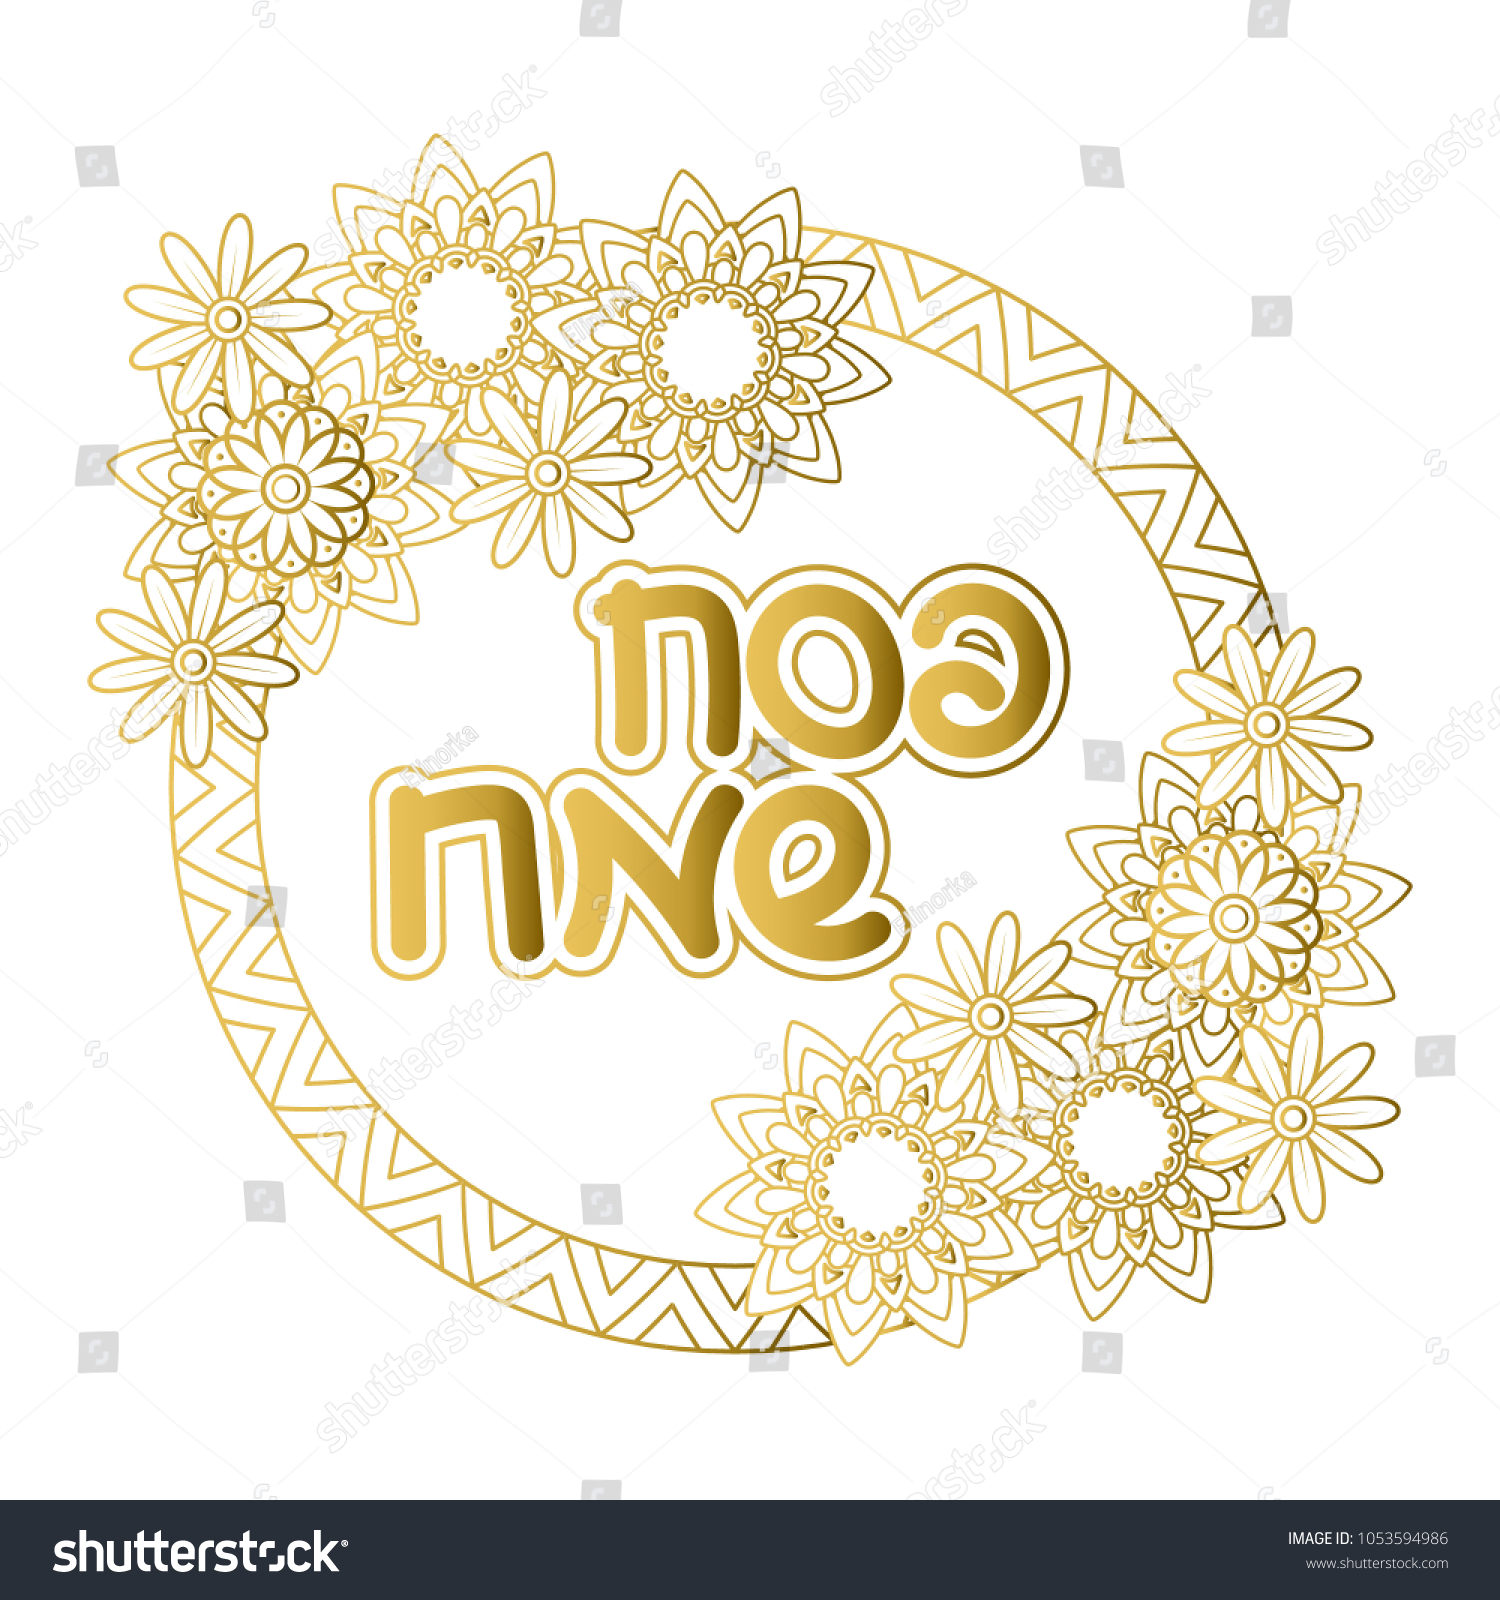 Jewish holiday greeting card template golden stock vector jewish holiday greeting card template golden spring flowers design text in hebrew happy passover kristyandbryce Image collections